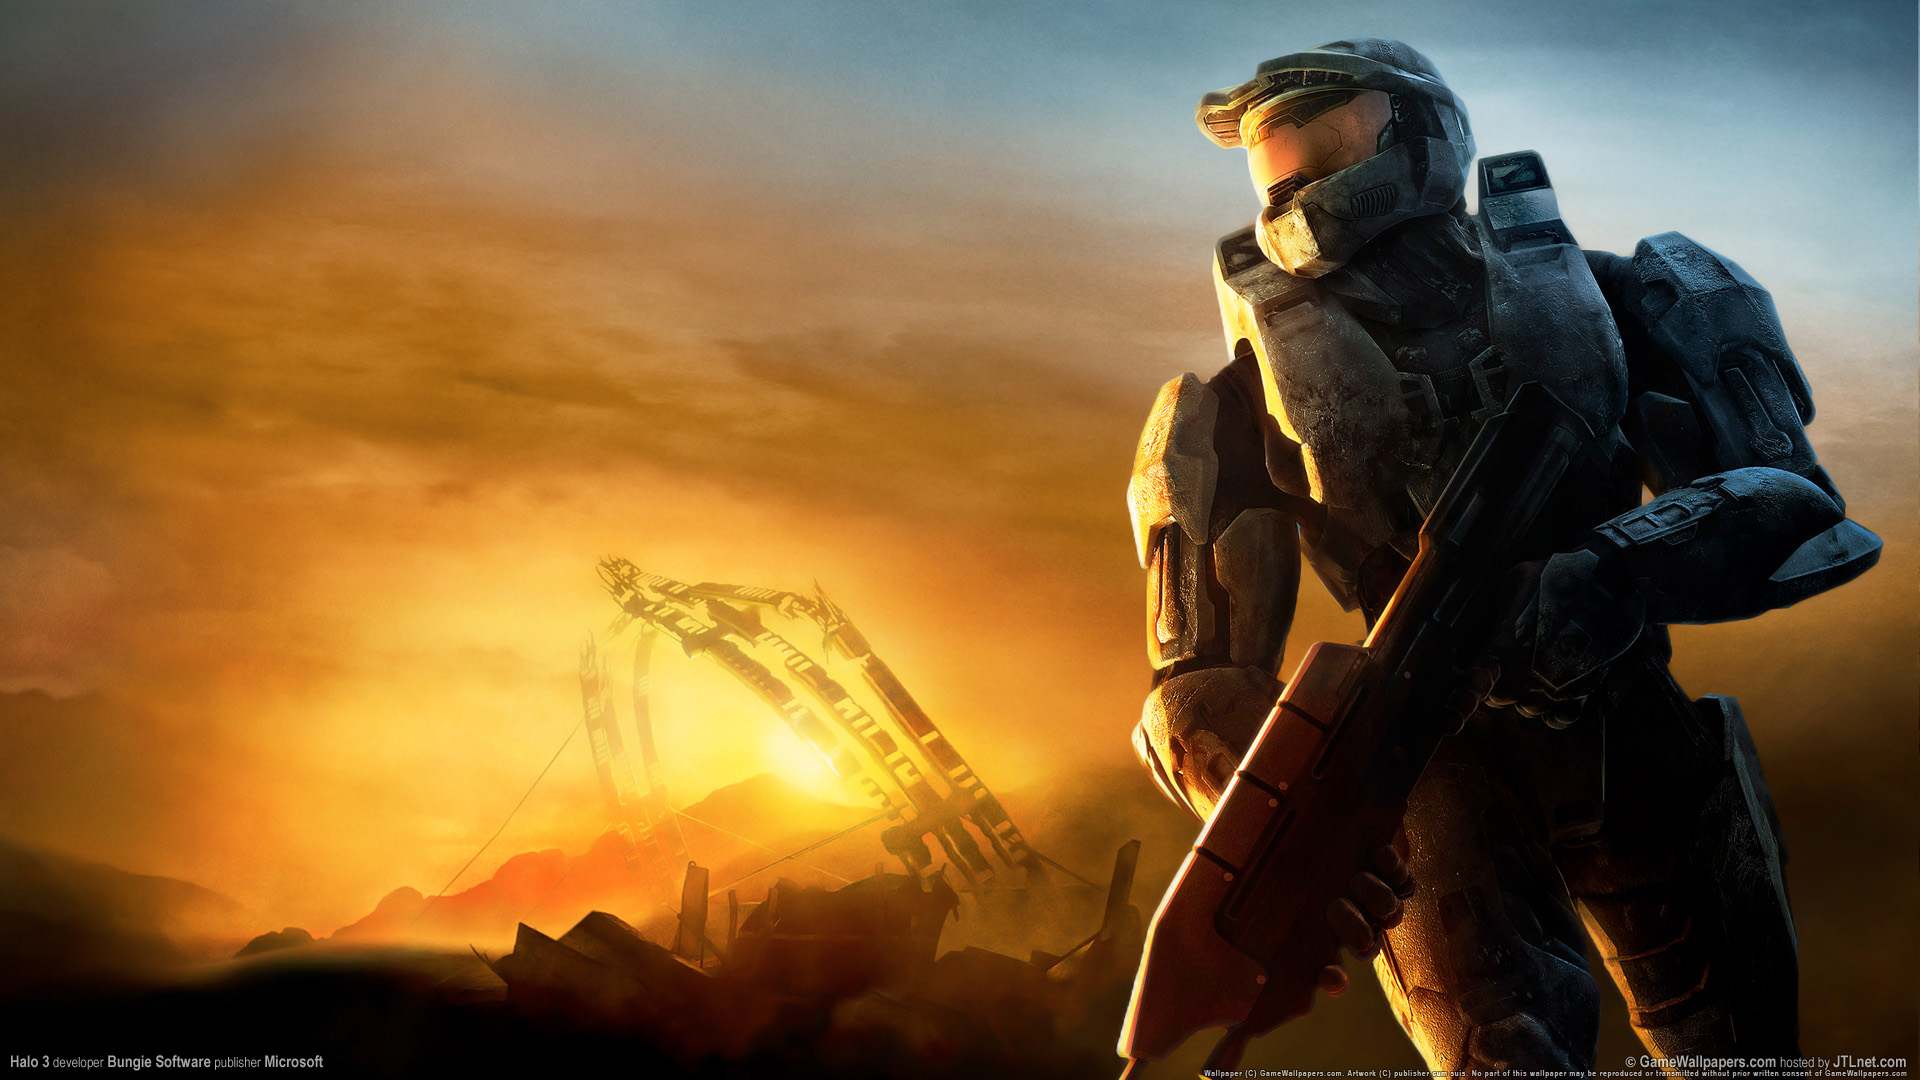 4k Wallpaper 3d 3840x2400 Halo 3 Hd Games 4k Wallpapers Images Backgrounds